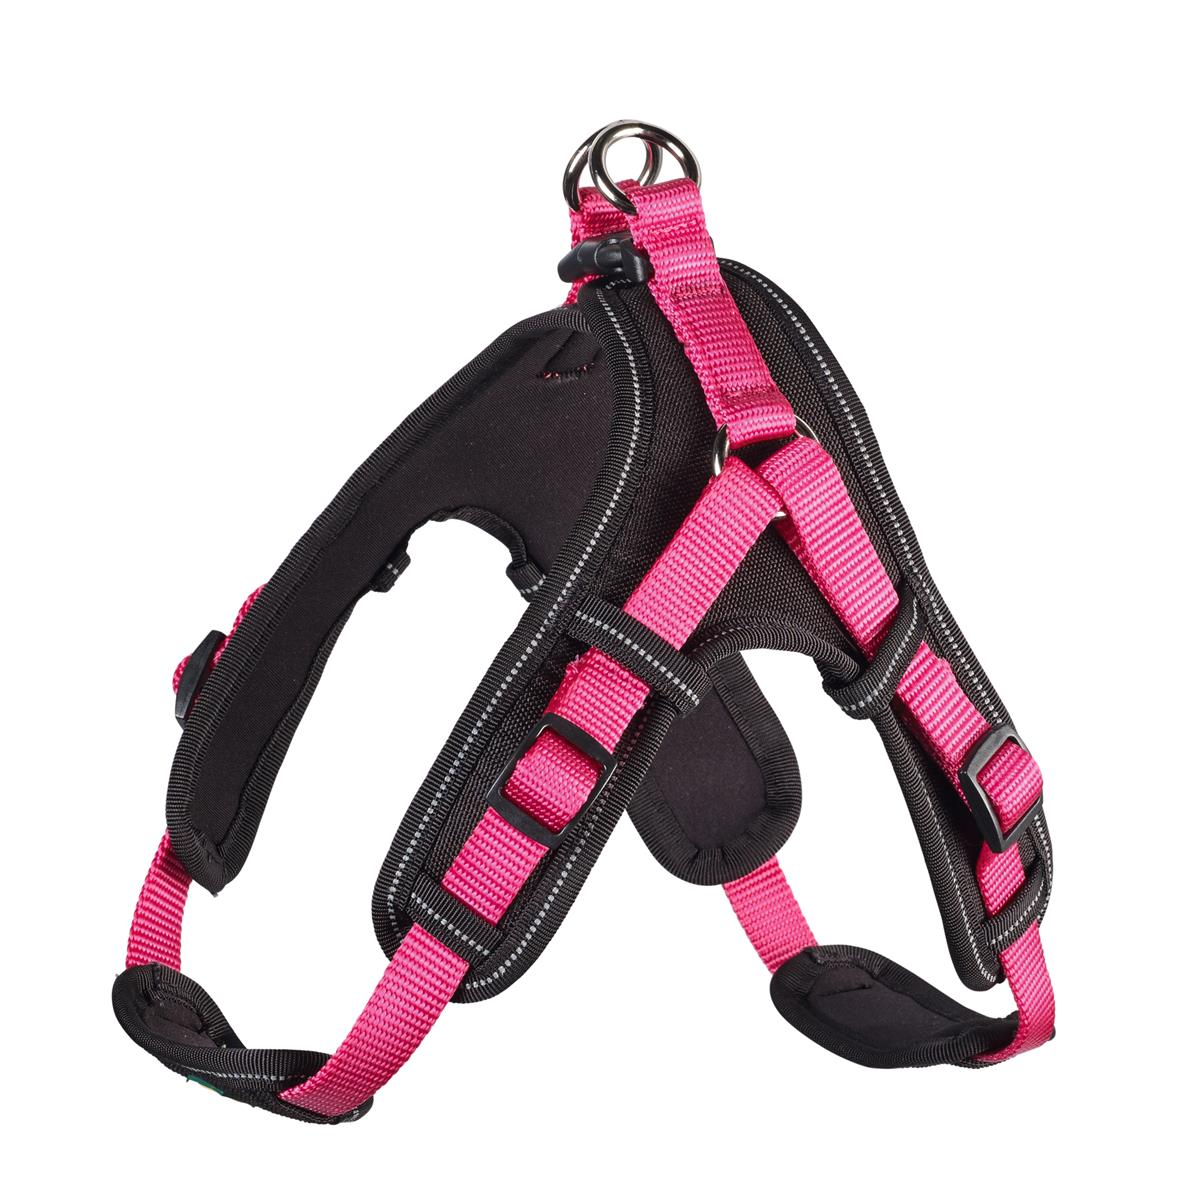 Harness Neoprene Vario Quick XS, 38-45 cm, 15 mm